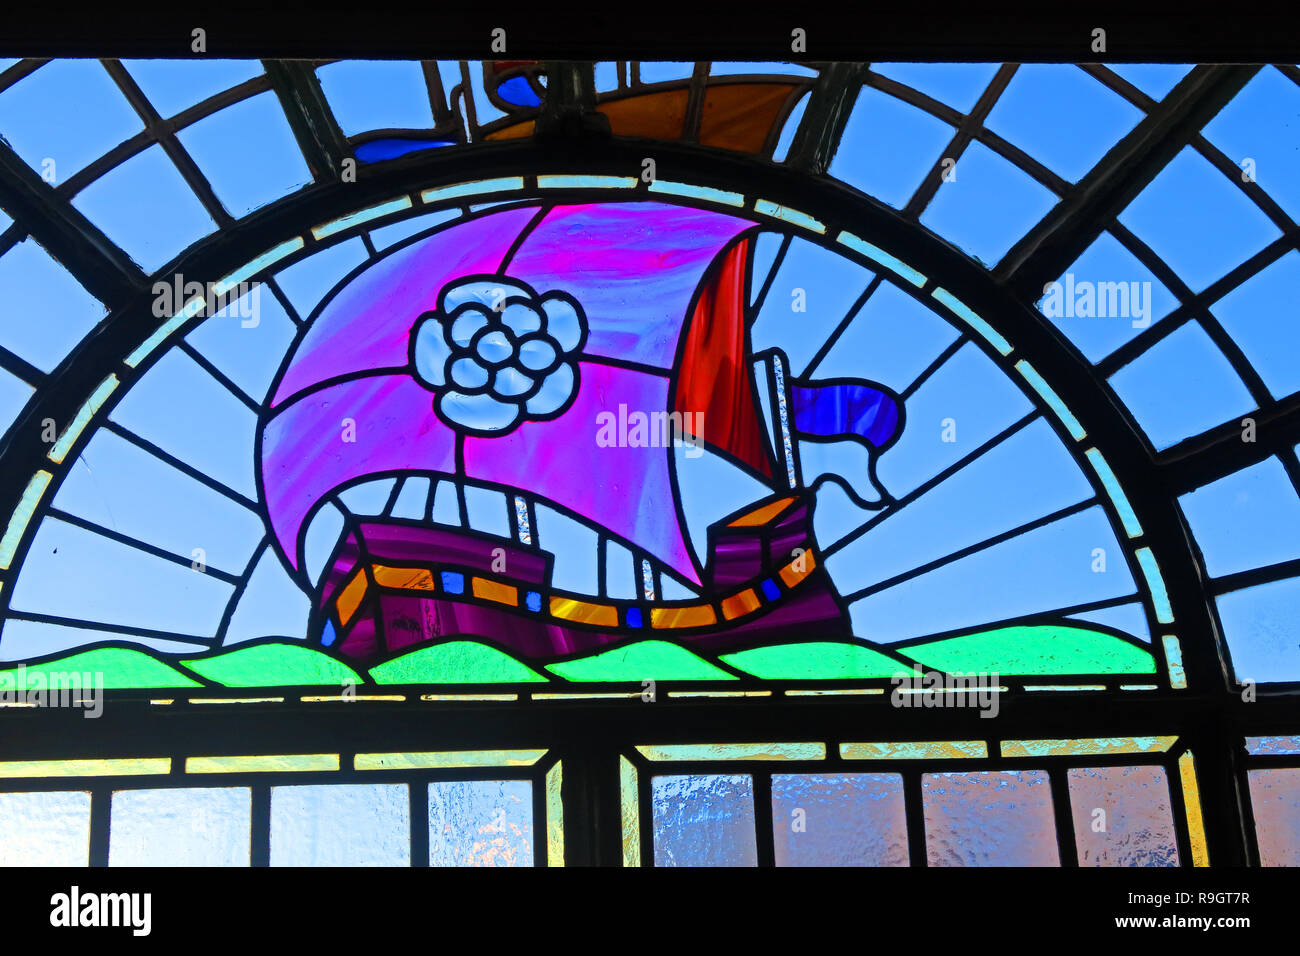 GoTonySmith,@HotpixUK,HotpixUK,Stained Glass Window of a sailing galleon,172 Warstone Ln,West Midlands,England,UK,B18 6JW,history,historic,pub,bar,RoseVilla,tavern,CAMRA,Window,ship,boat,window,B18,city centre,Victorian pub,Birmingham pubs,classic,White Rose,Yorkshire,sails,RVT,real ale,Summer Row,art-deco features and original stone placements are original features,Mitchell and Butlers,Mitchell,Butlers,Wood & Kendrick,bay window,inter-War public house,Public House,listed